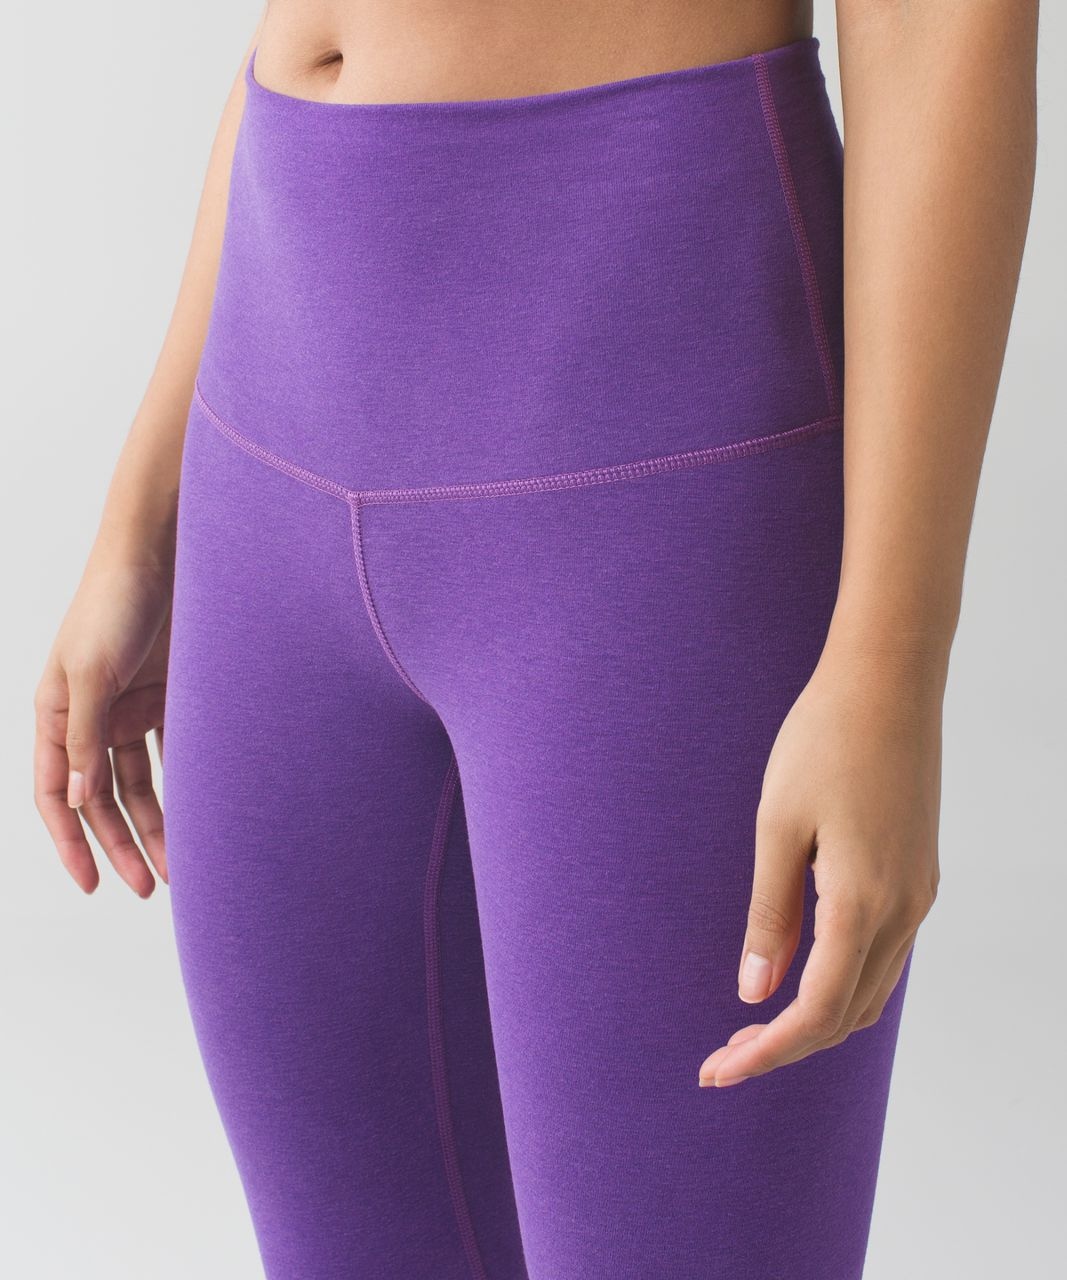 Lululemon Wunder Under Pant (Hi-Rise) *Cotton - Heathered Tender Violet